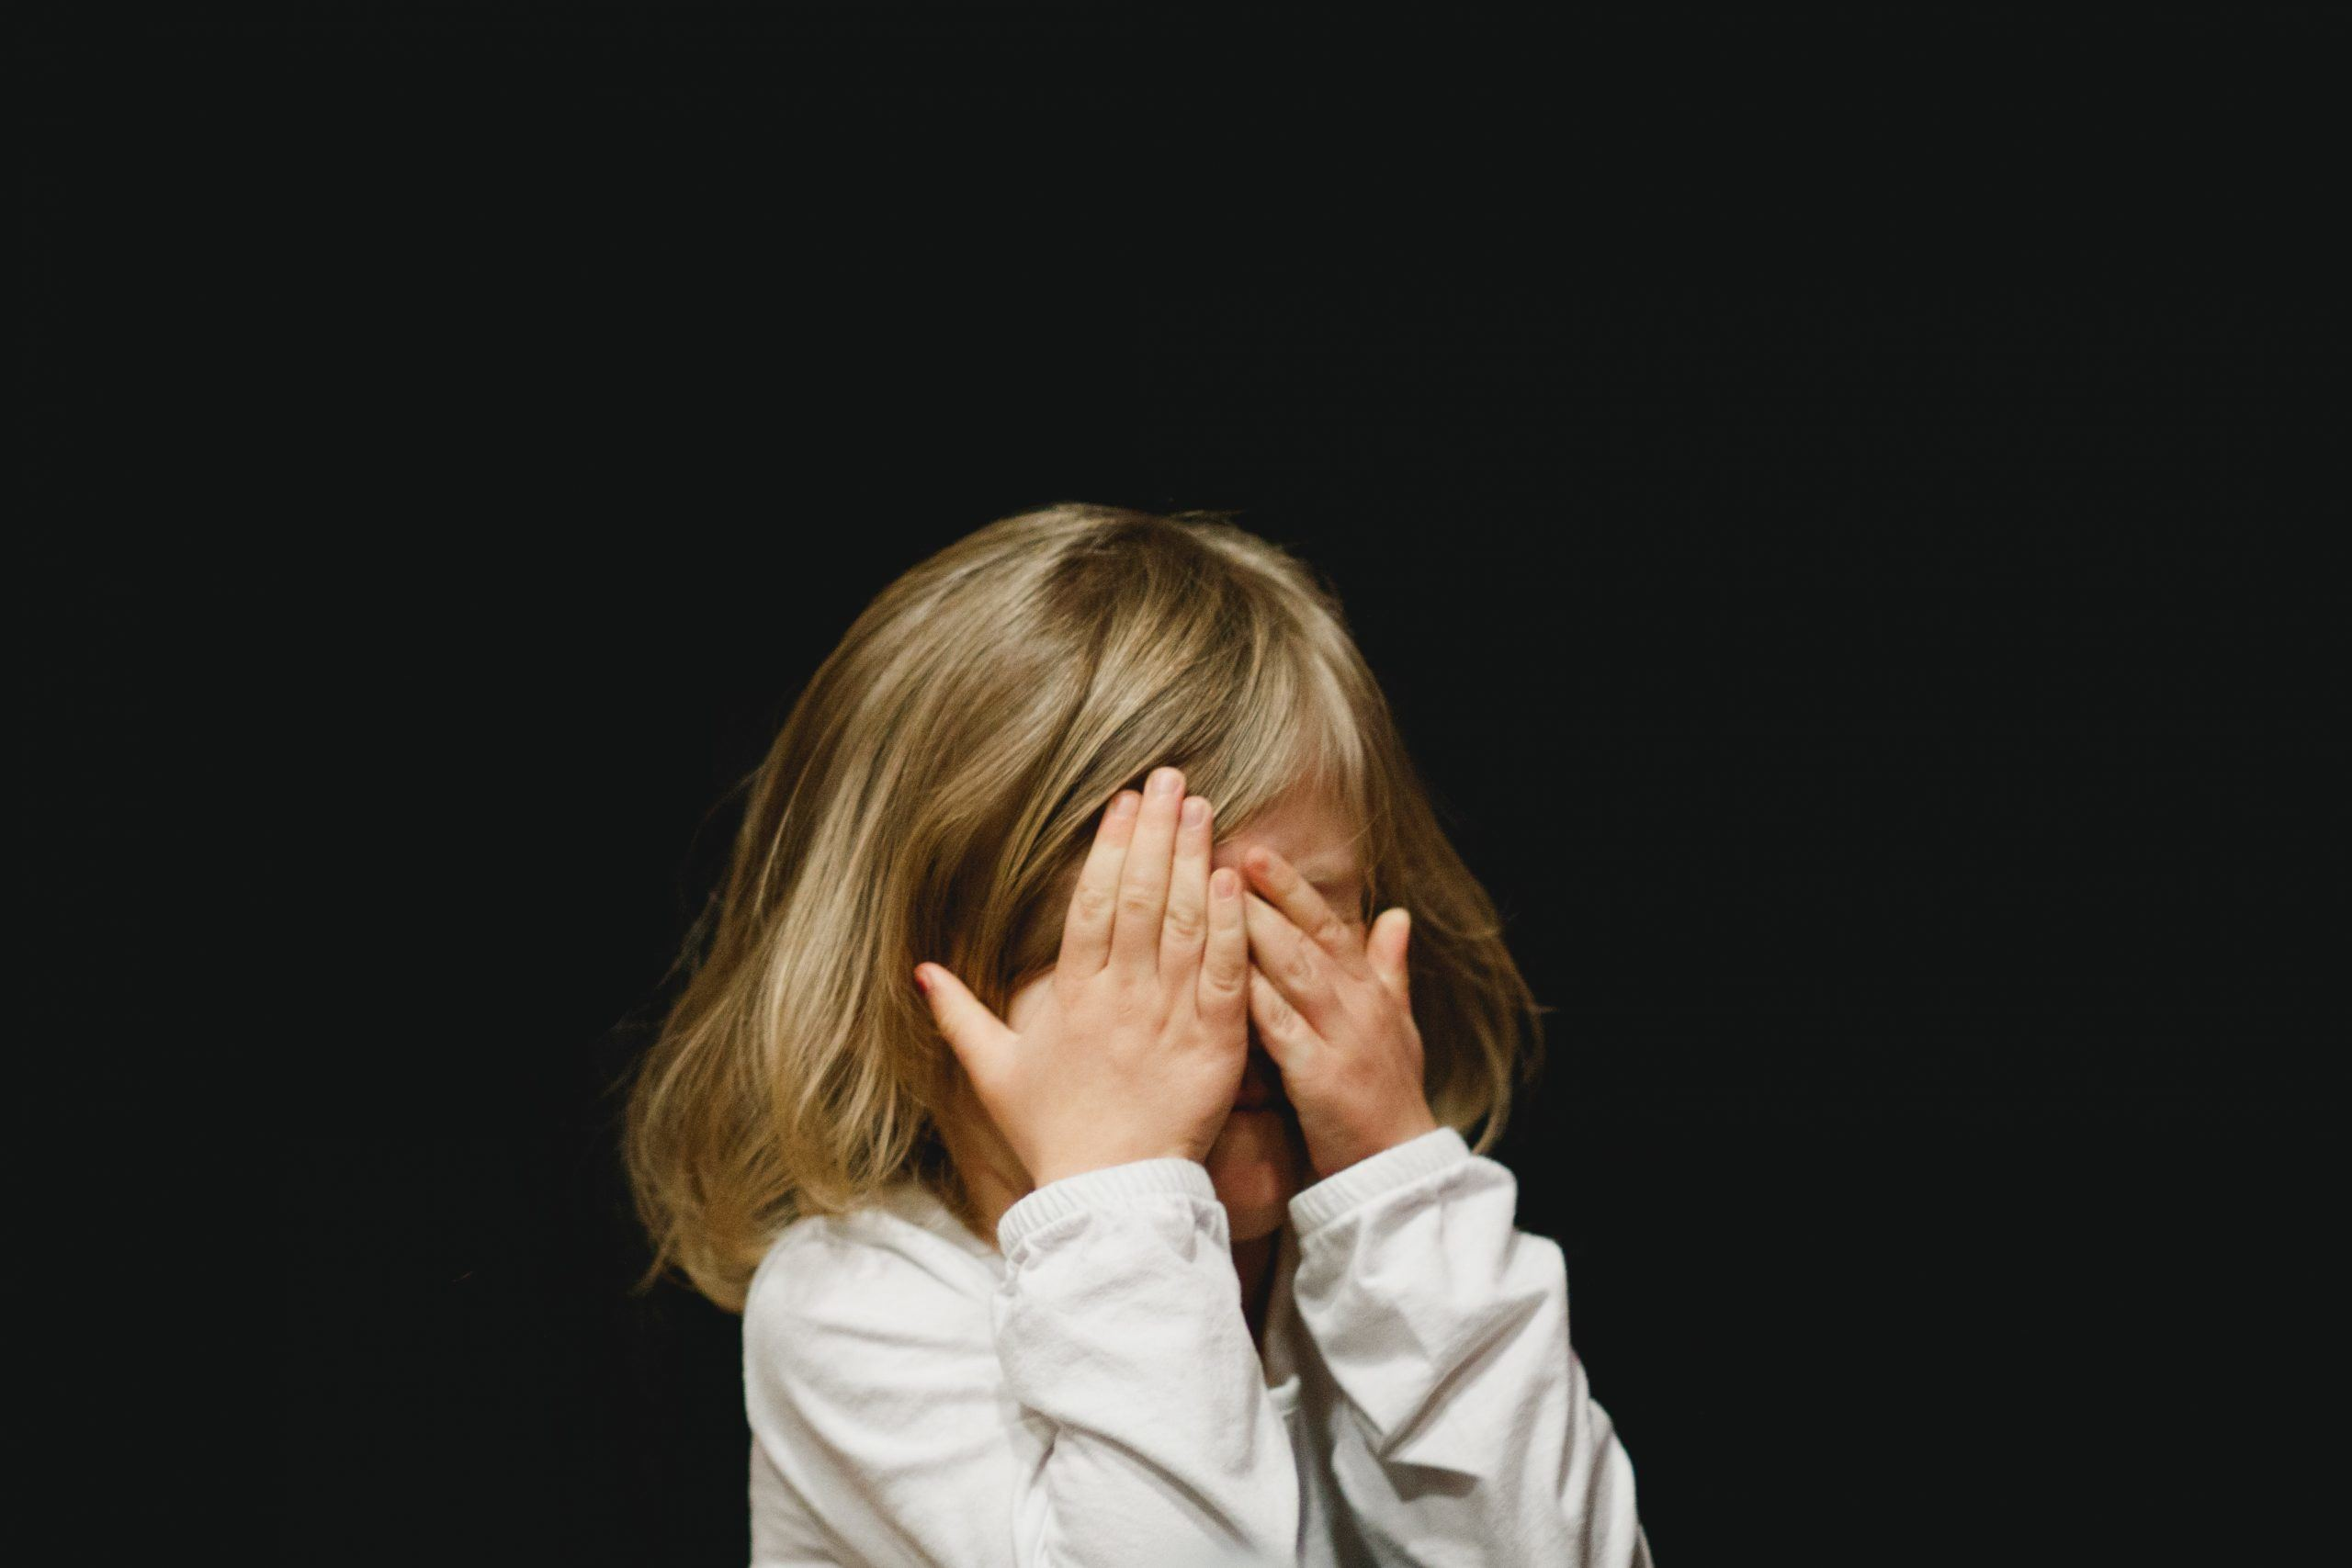 little girl hiding behind her hands